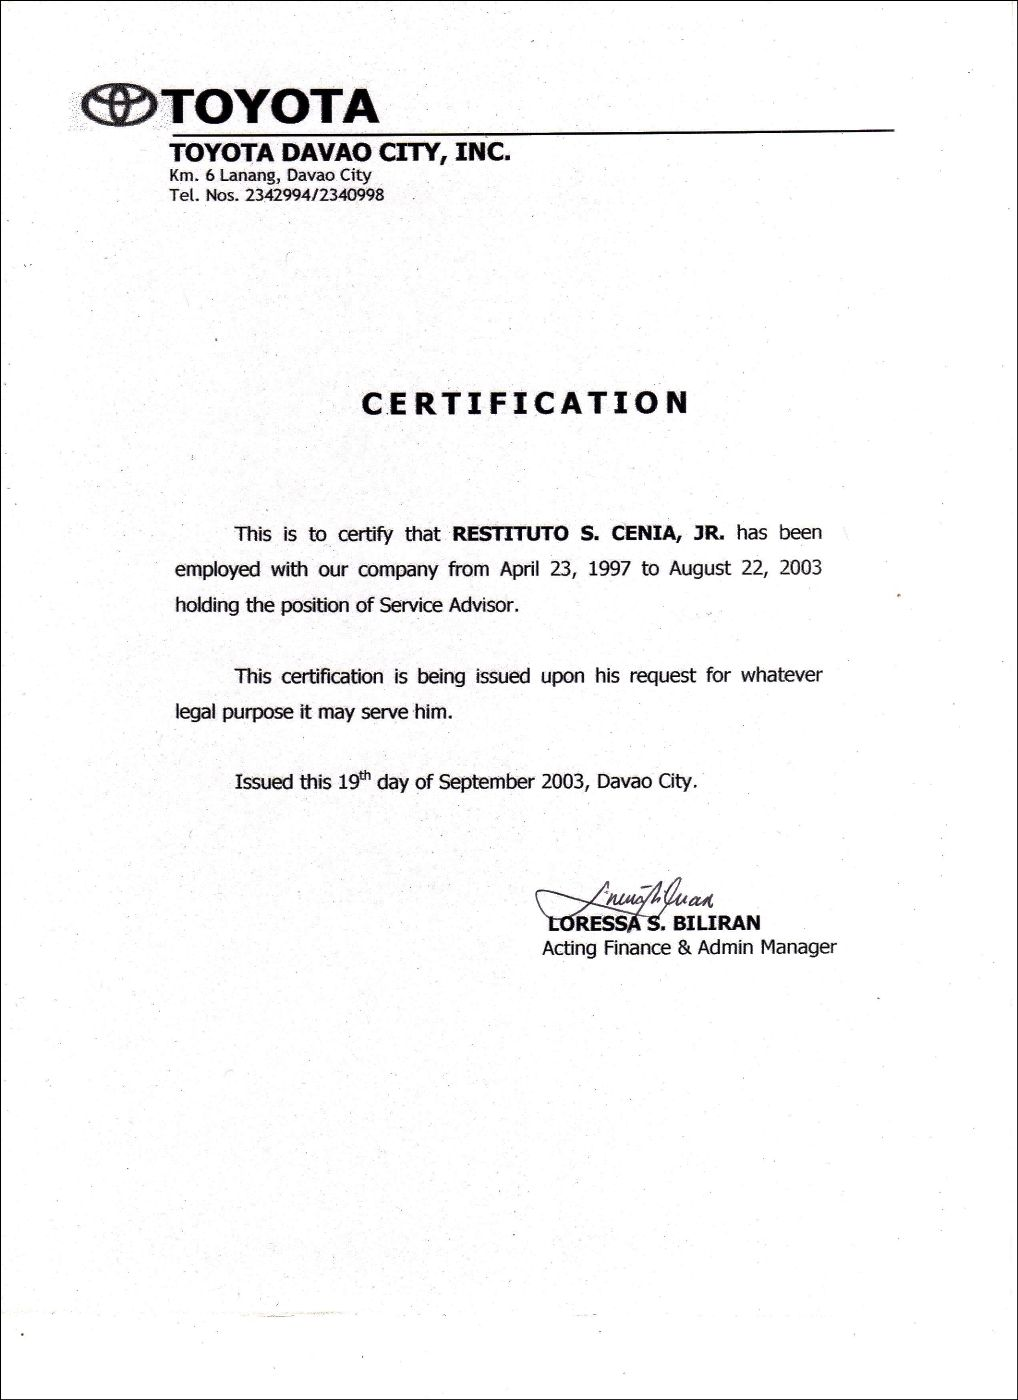 Employment certificate sample best templates pinterest employment certificate sample best templates pinterest employmentyota davao employmentg yadclub Image collections